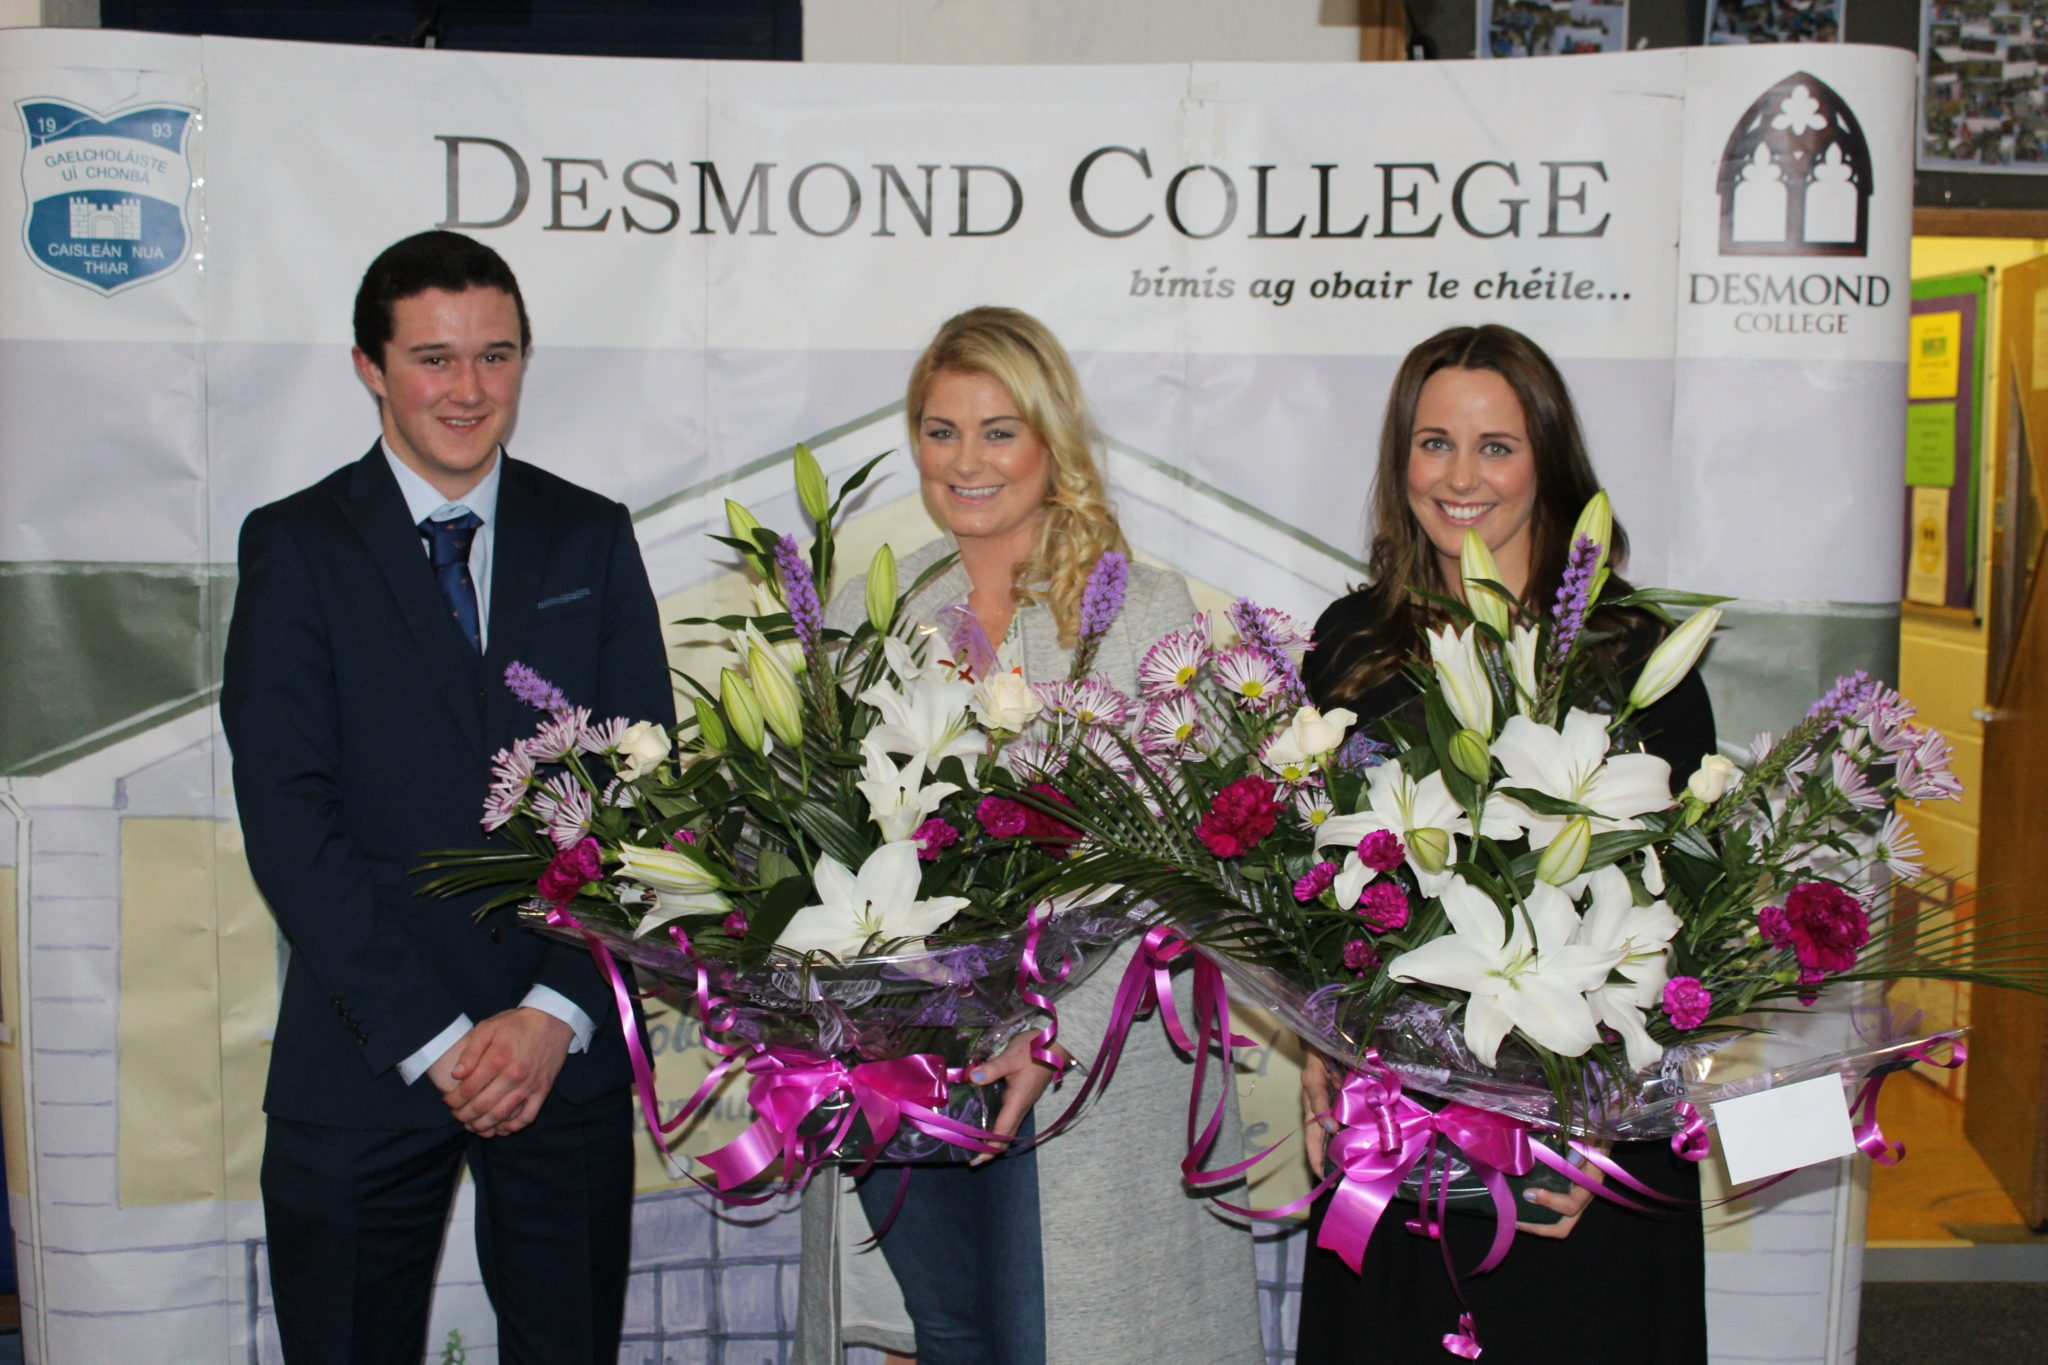 Desmond College Leaving Certificate Graduation 2015: Presentation to the Organisers of the Graduation : Eamonn Cooper with Ms Ryan and Ms White